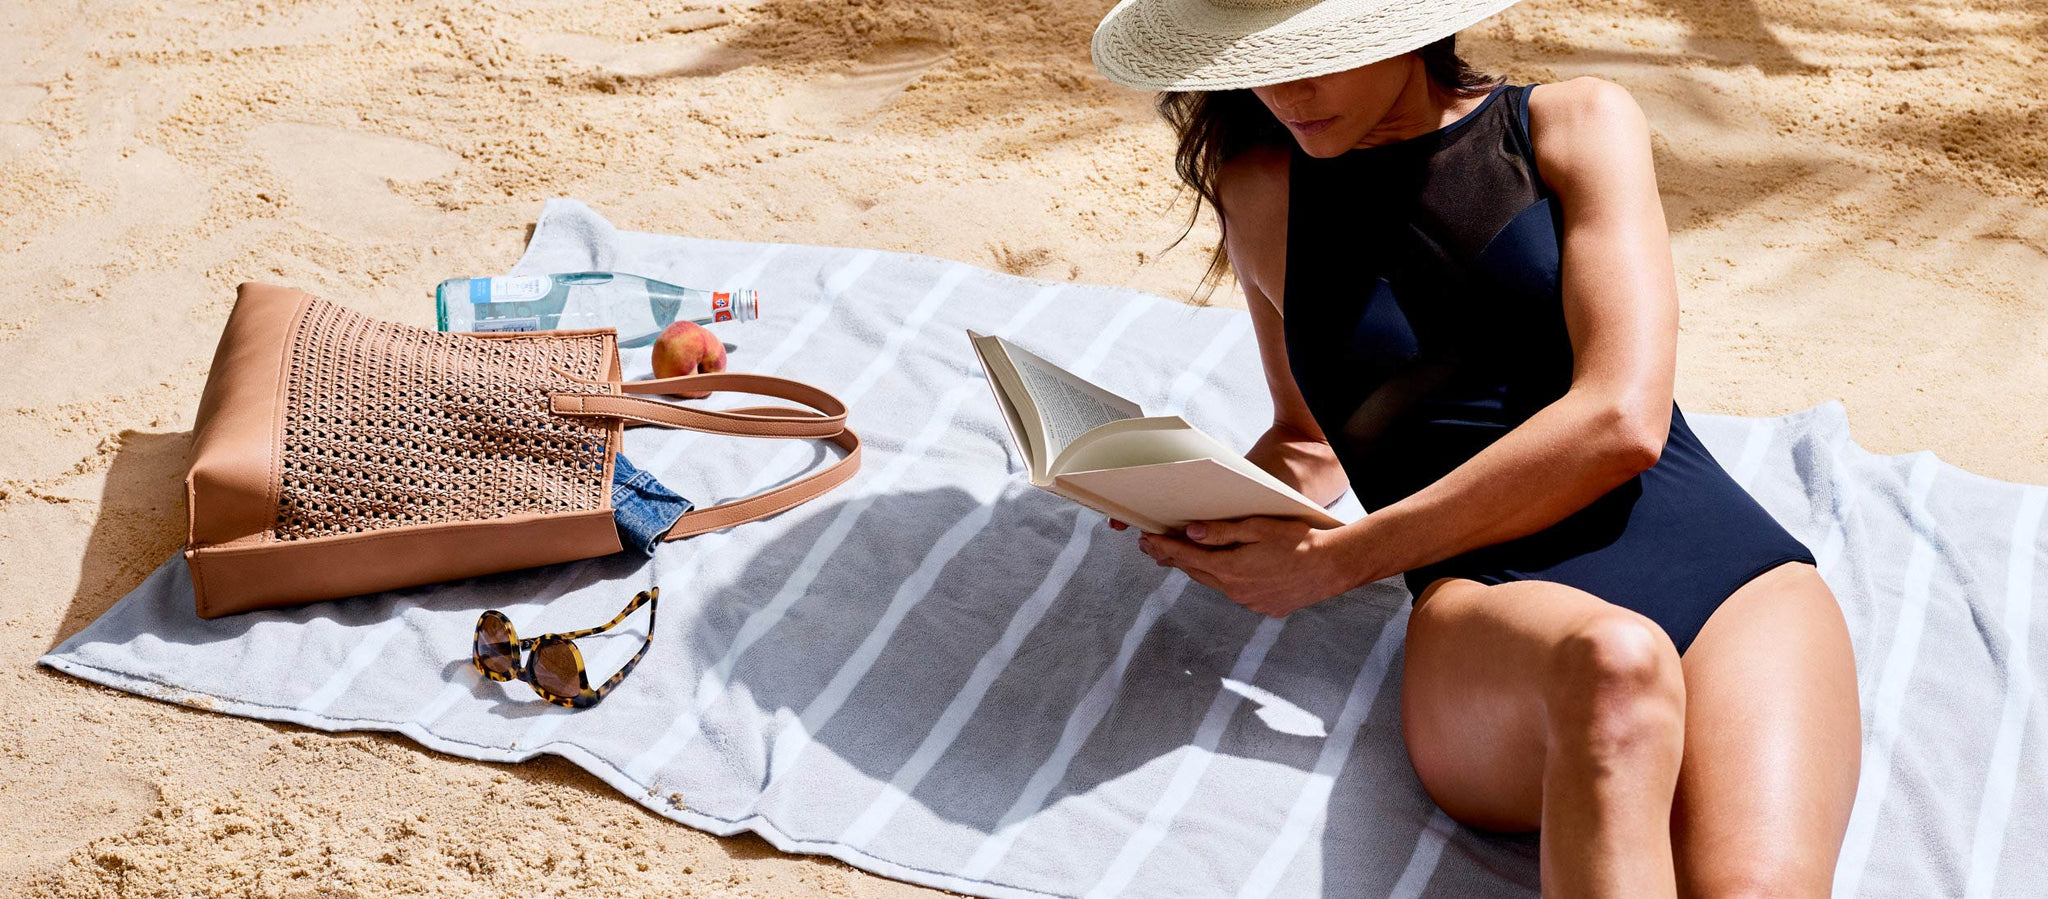 Woman on beach reading book